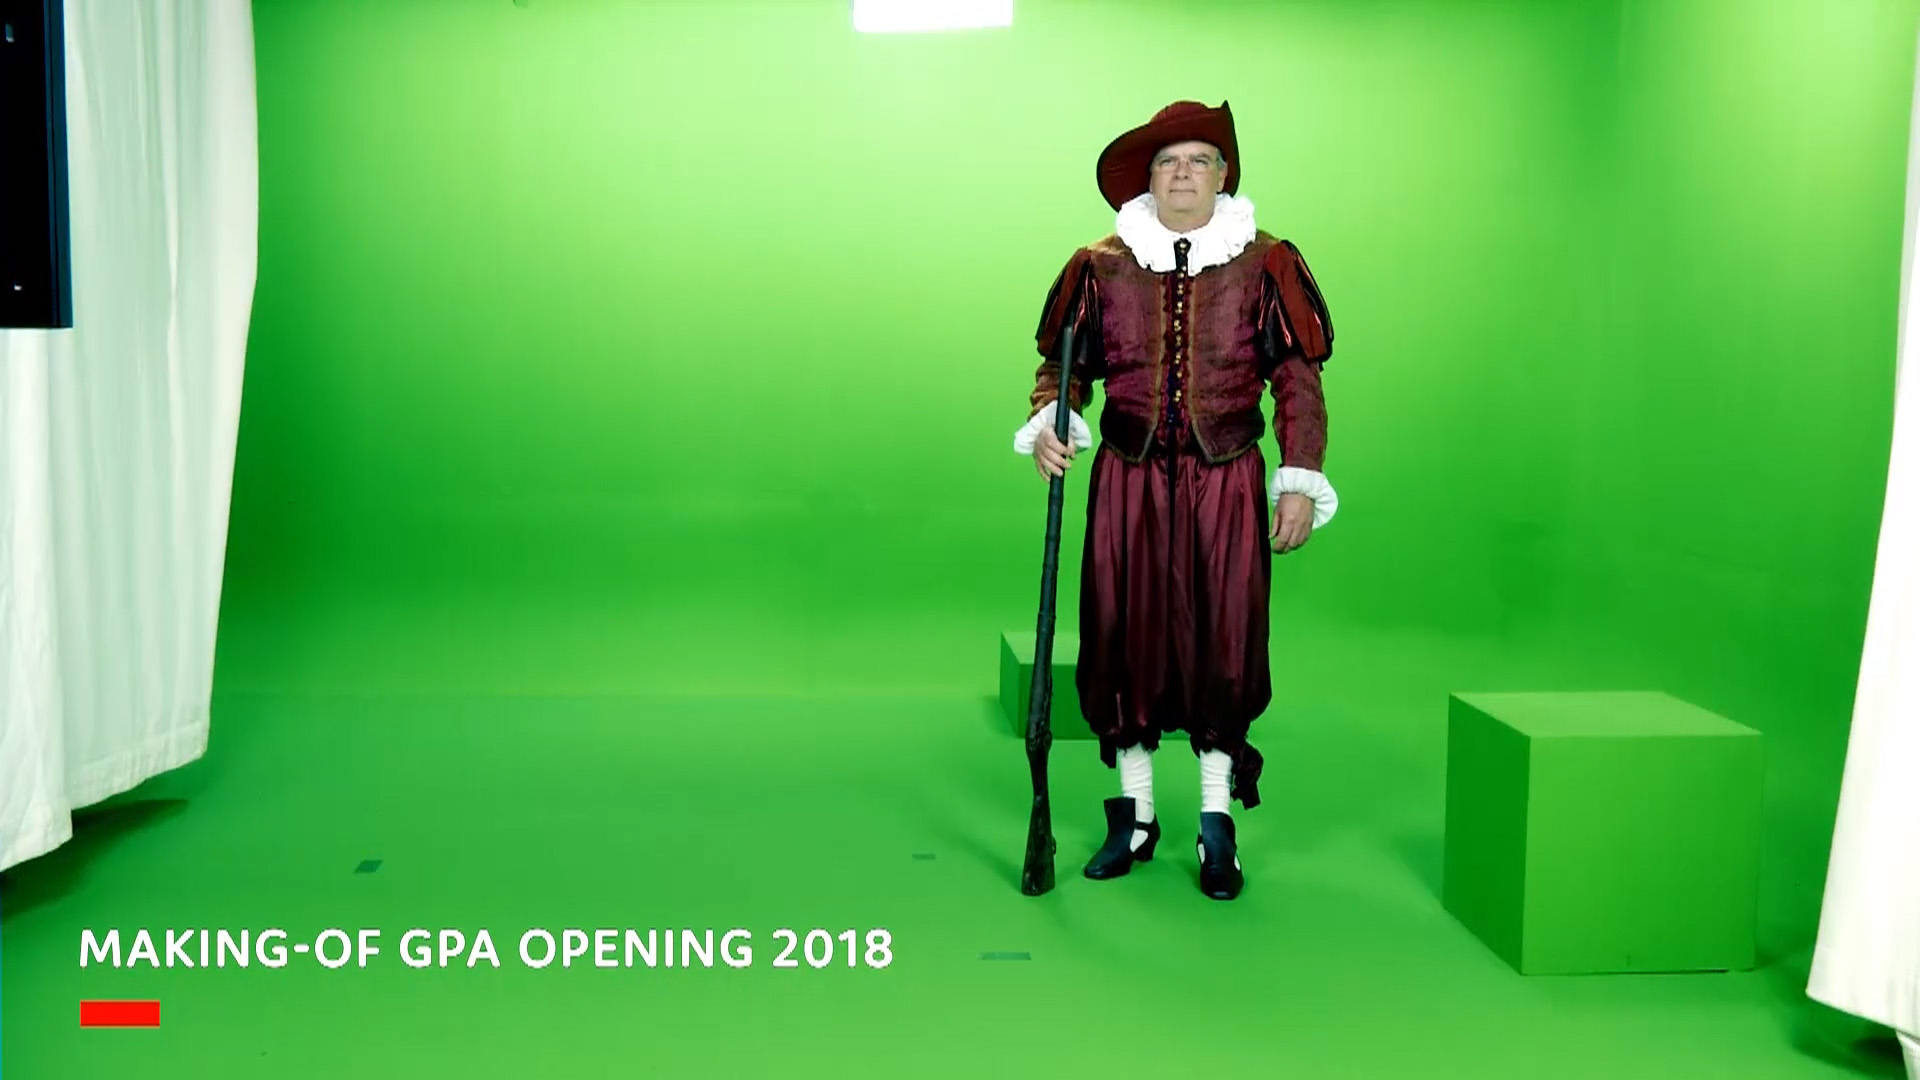 Making-of GPA Opening 2018